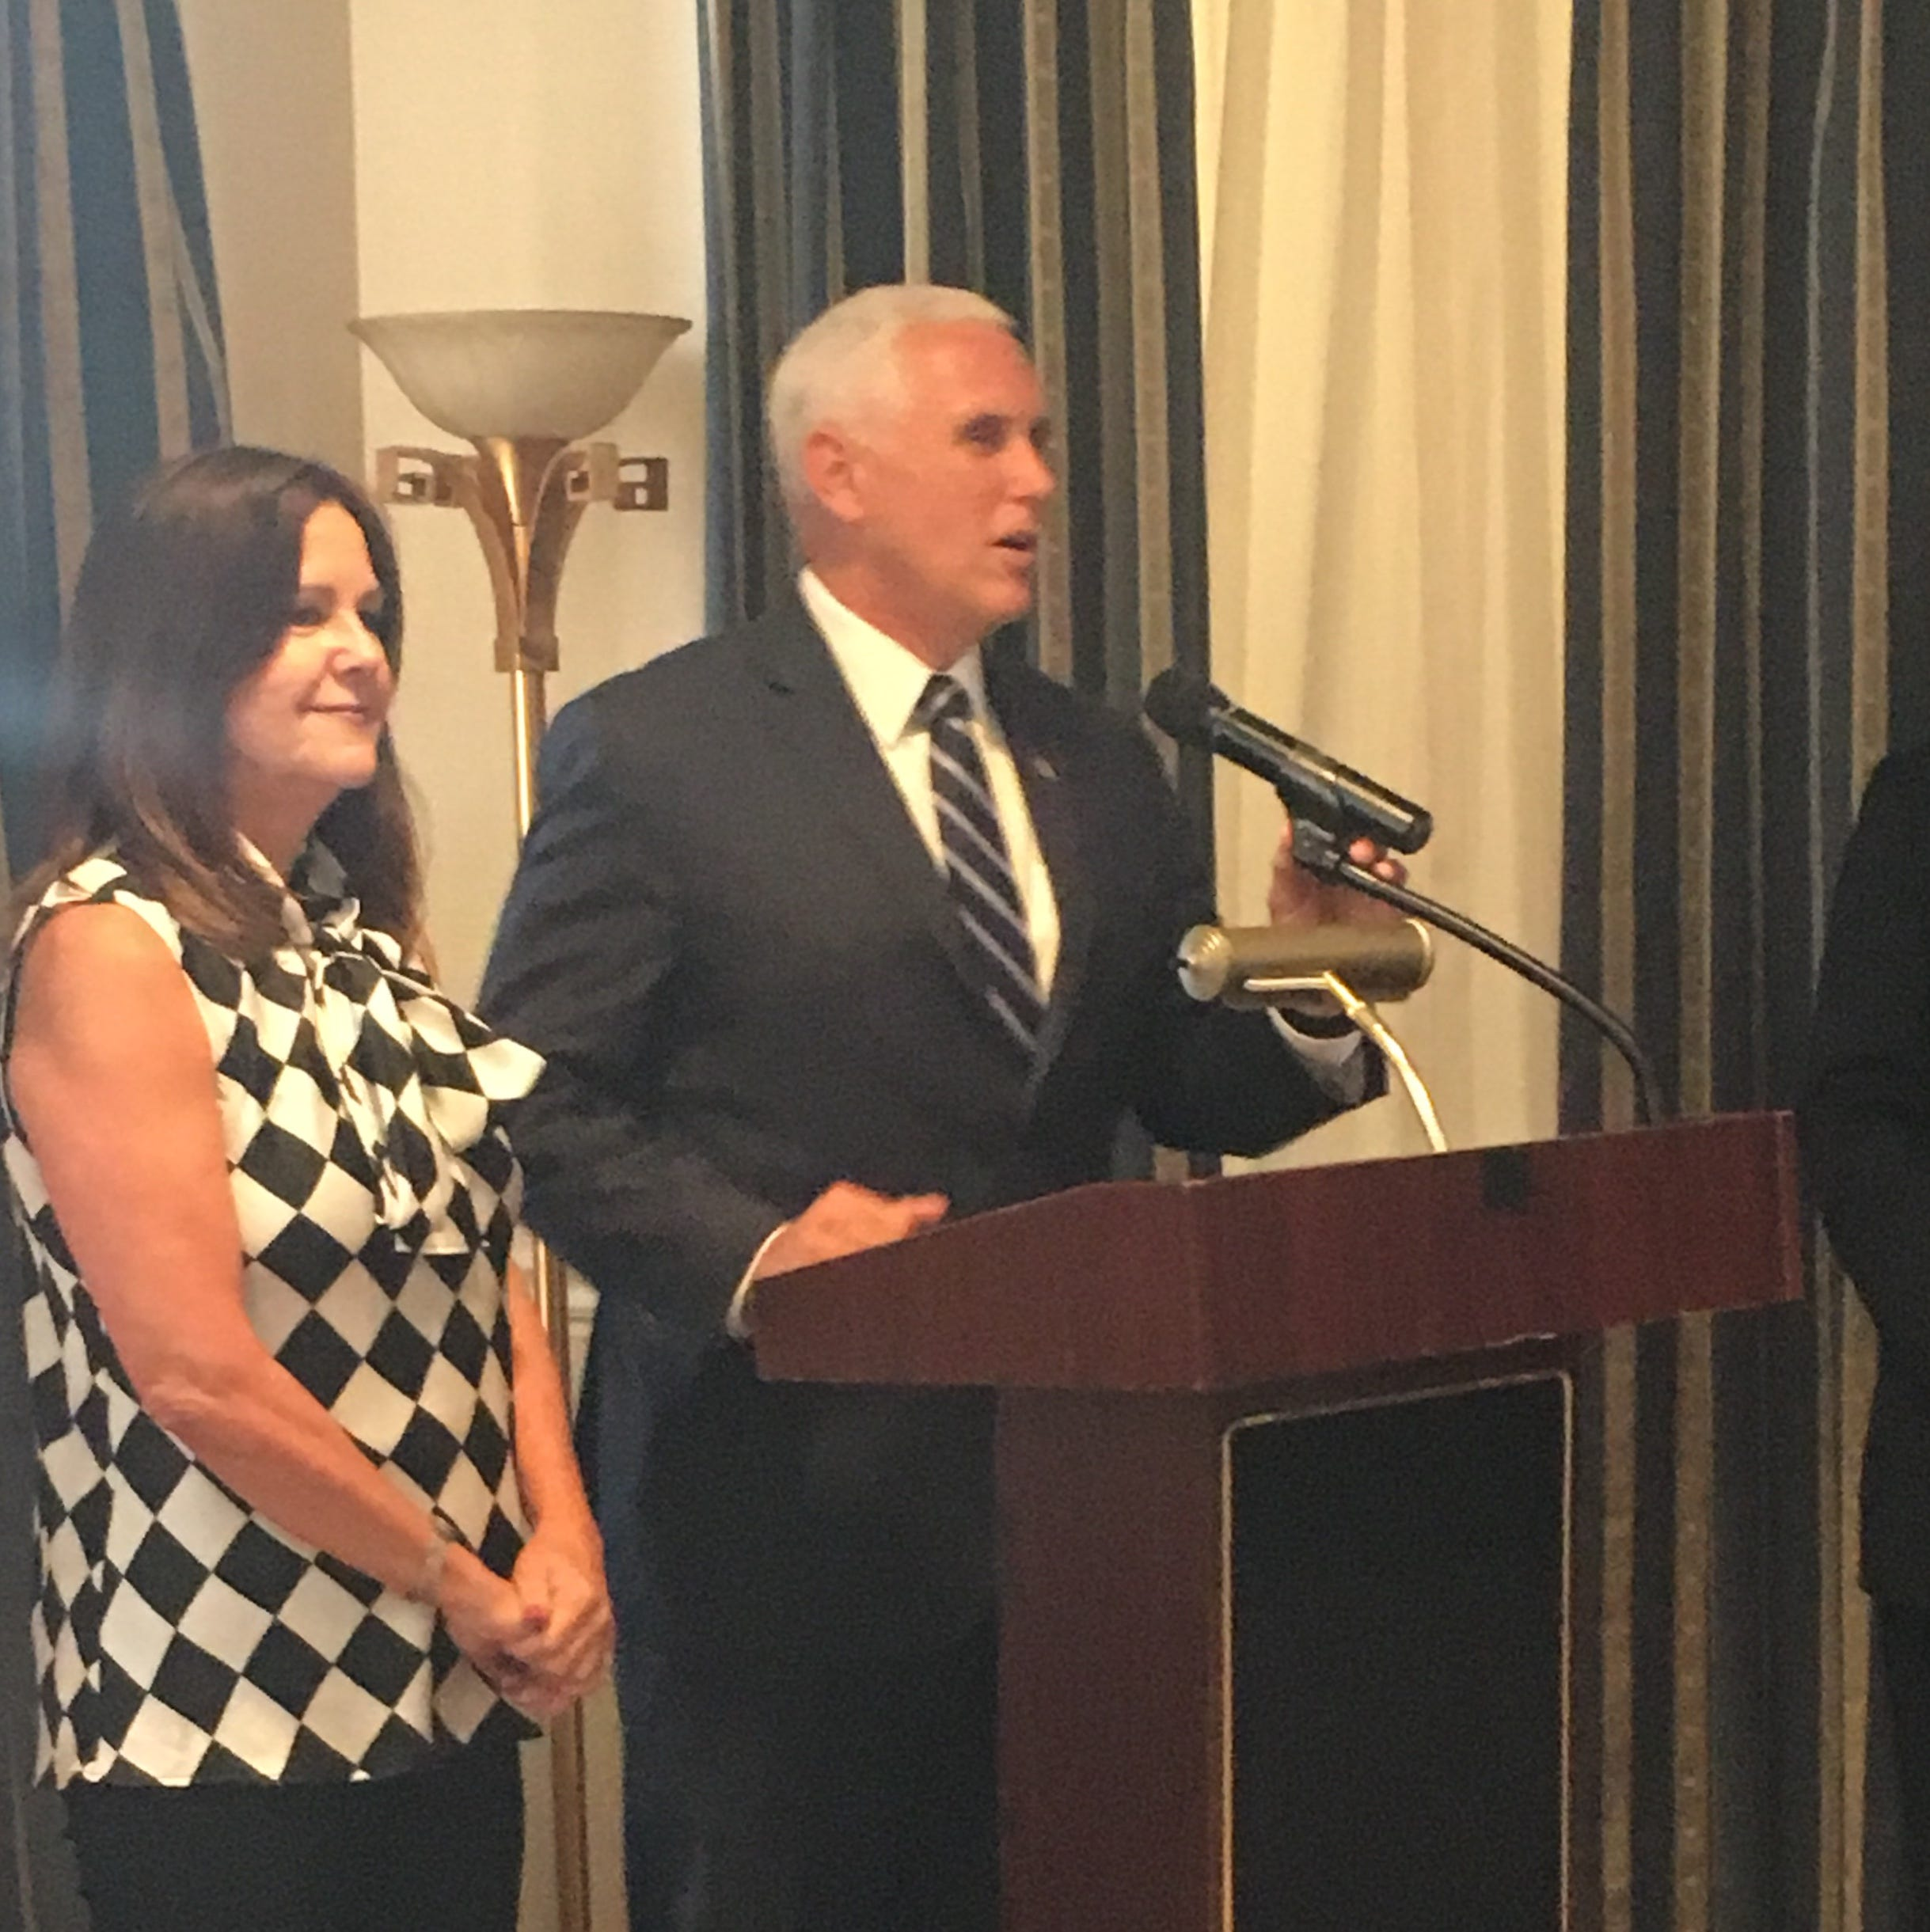 Vice President Mike Pence and his wife, Karen Pence, address the Indiana Society of Washington at a party celebrating the Indianapolis 500.